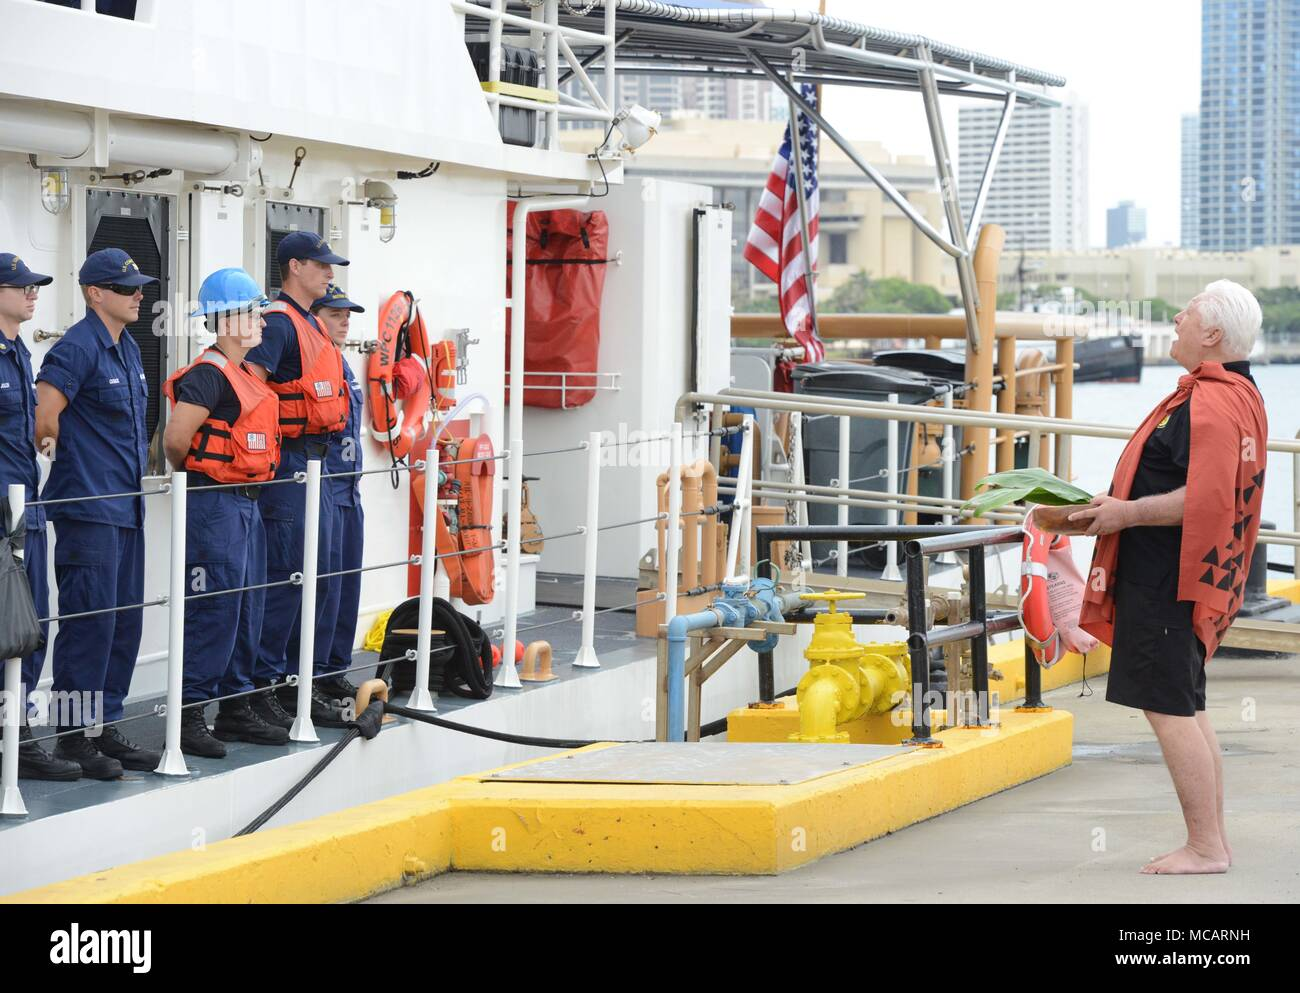 Leighton Tseu, Kane O Ke Kai, gives a Hawaiian blessing during the arrival of the Coast Coast Guard Cutter Joseph Gerczak (WPC 1126), at Coast Guard Base Honolulu, Feb. 4, 2018. The Joseph Gerczak is the second of three Honolulu-based FRCs that will primarily serve the main Hawaiian Islands.  (U.S. Coast Guard photo by Petty Officer 2nd Class Tara Molle/Released) Stock Photo